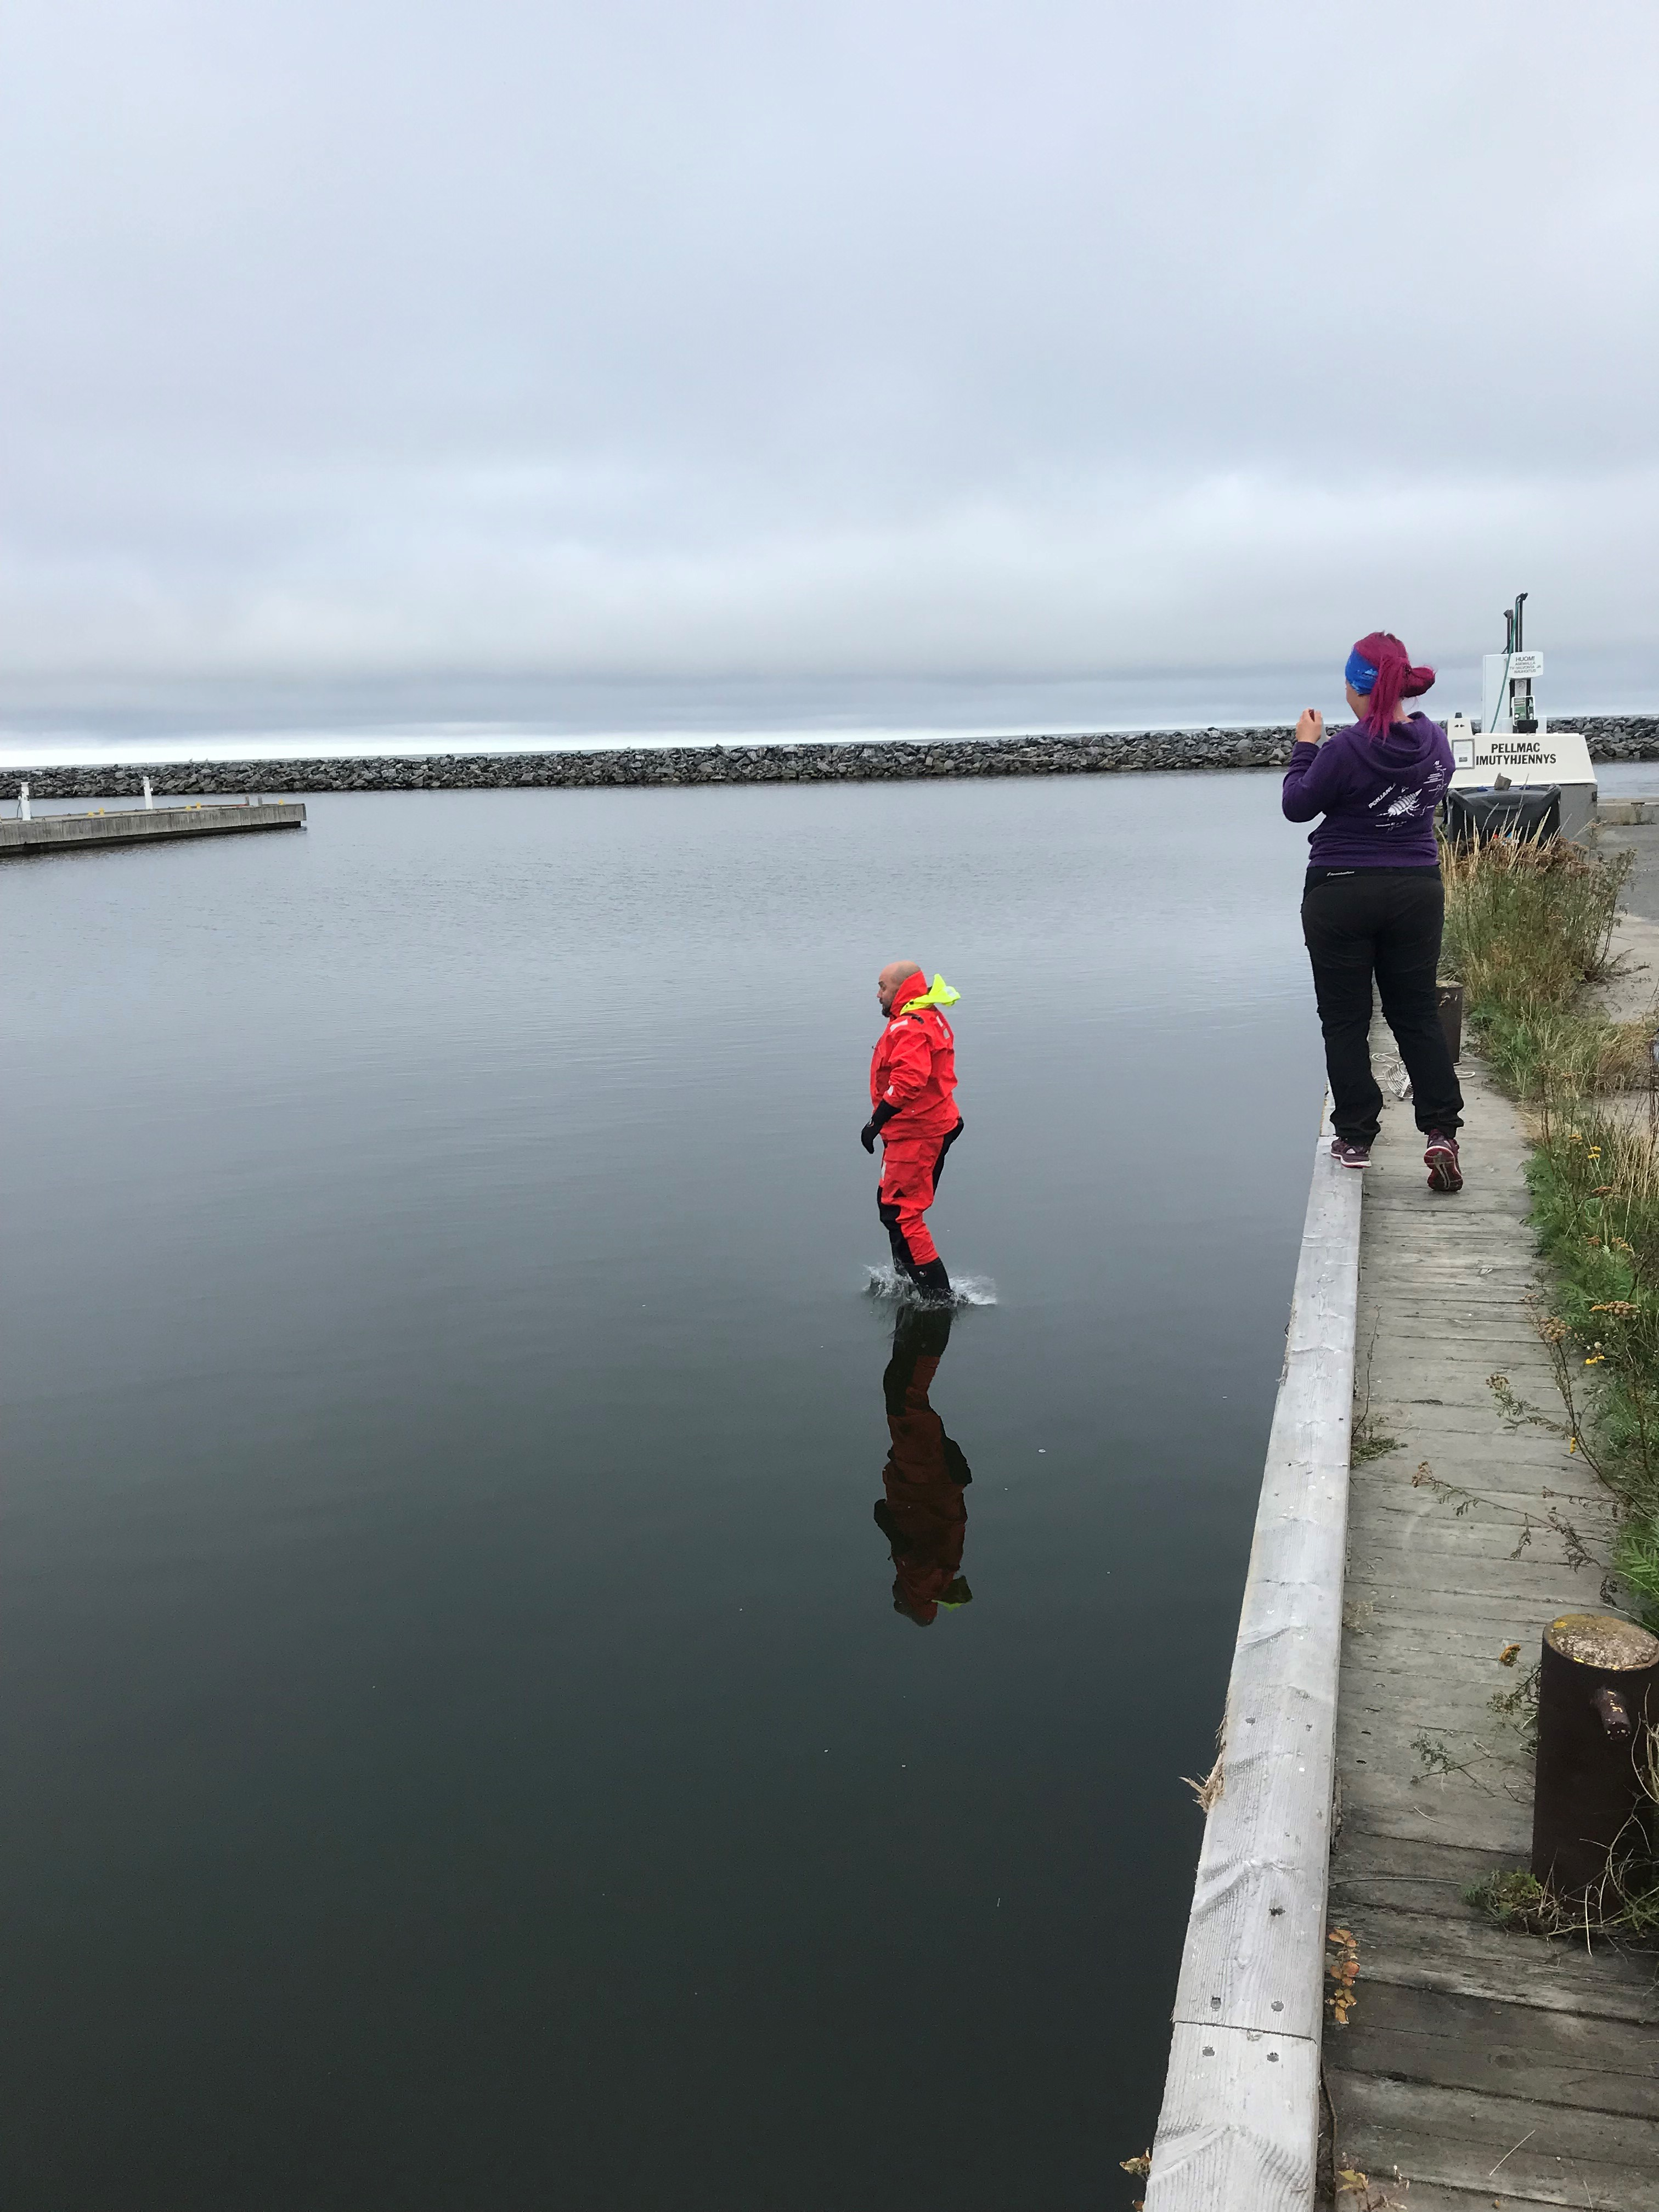 A teacher jumping in the water in survival suit, while Suvi Saarnio is watching on the jetty.